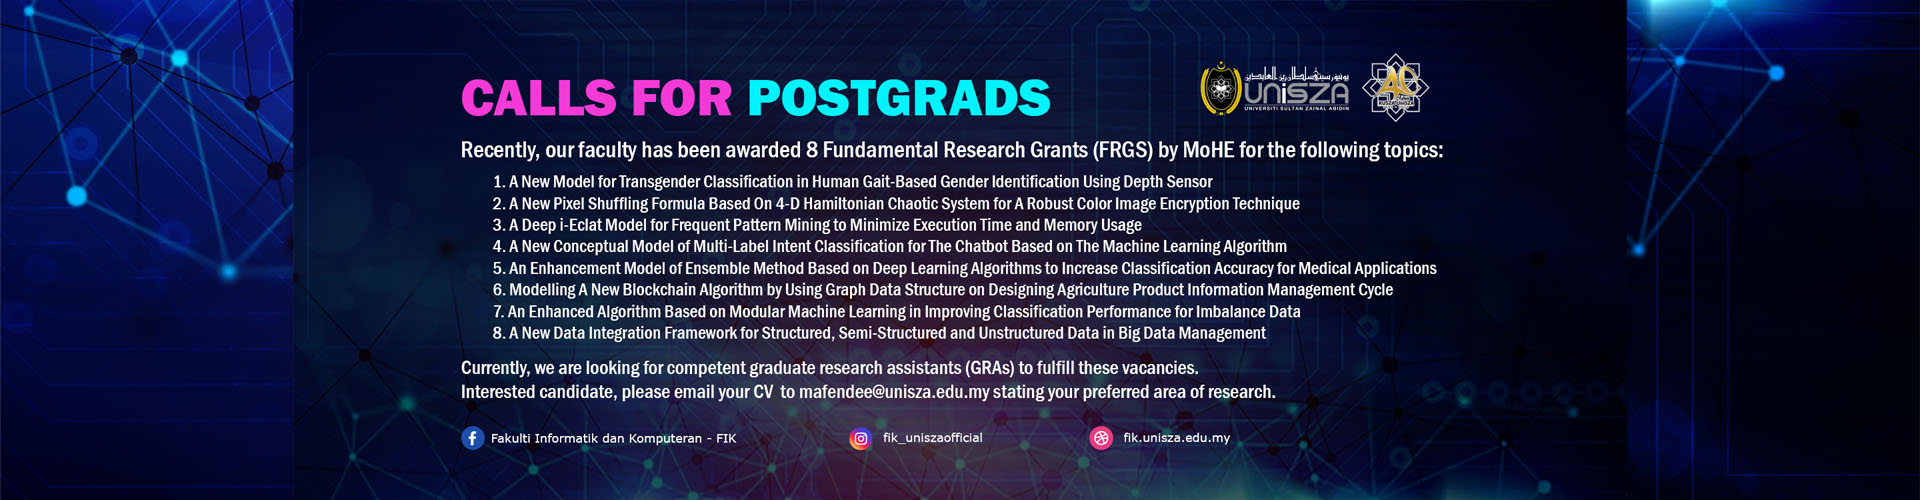 Call For Postgrads